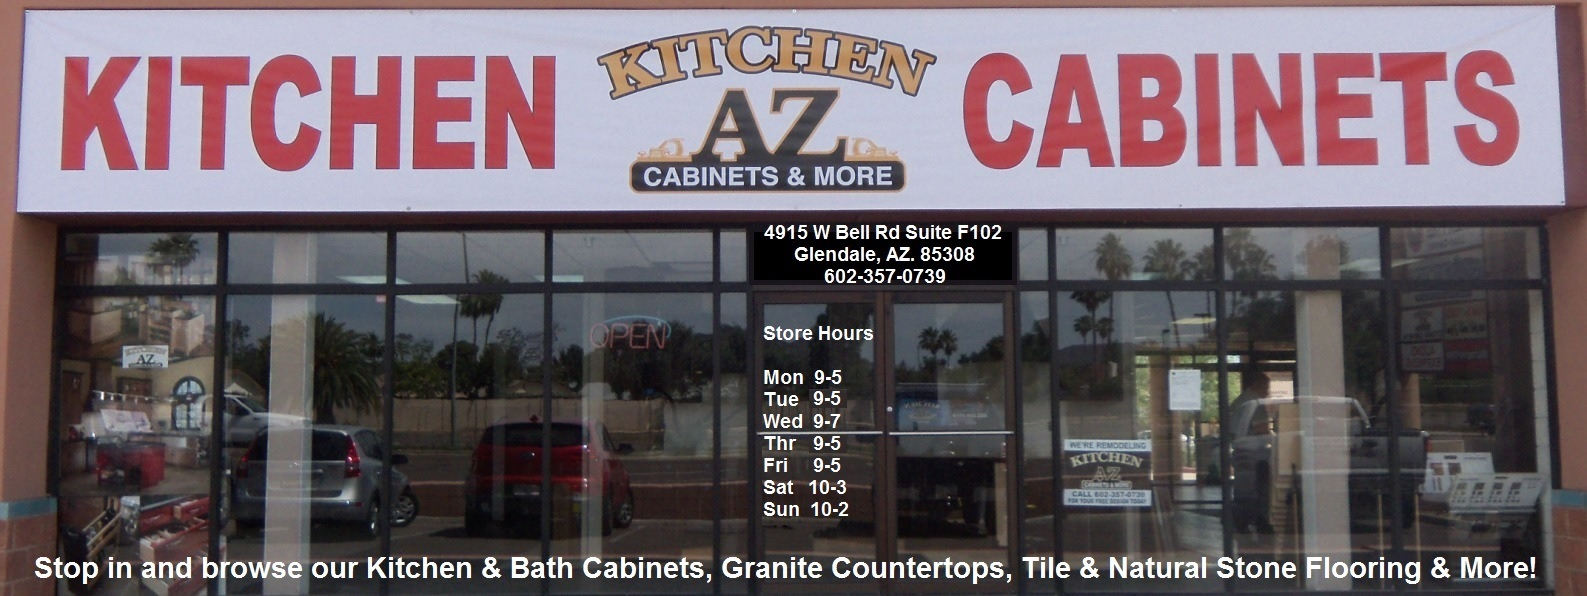 Glendale AZ kitchen Cabinets Remodeling Showroom